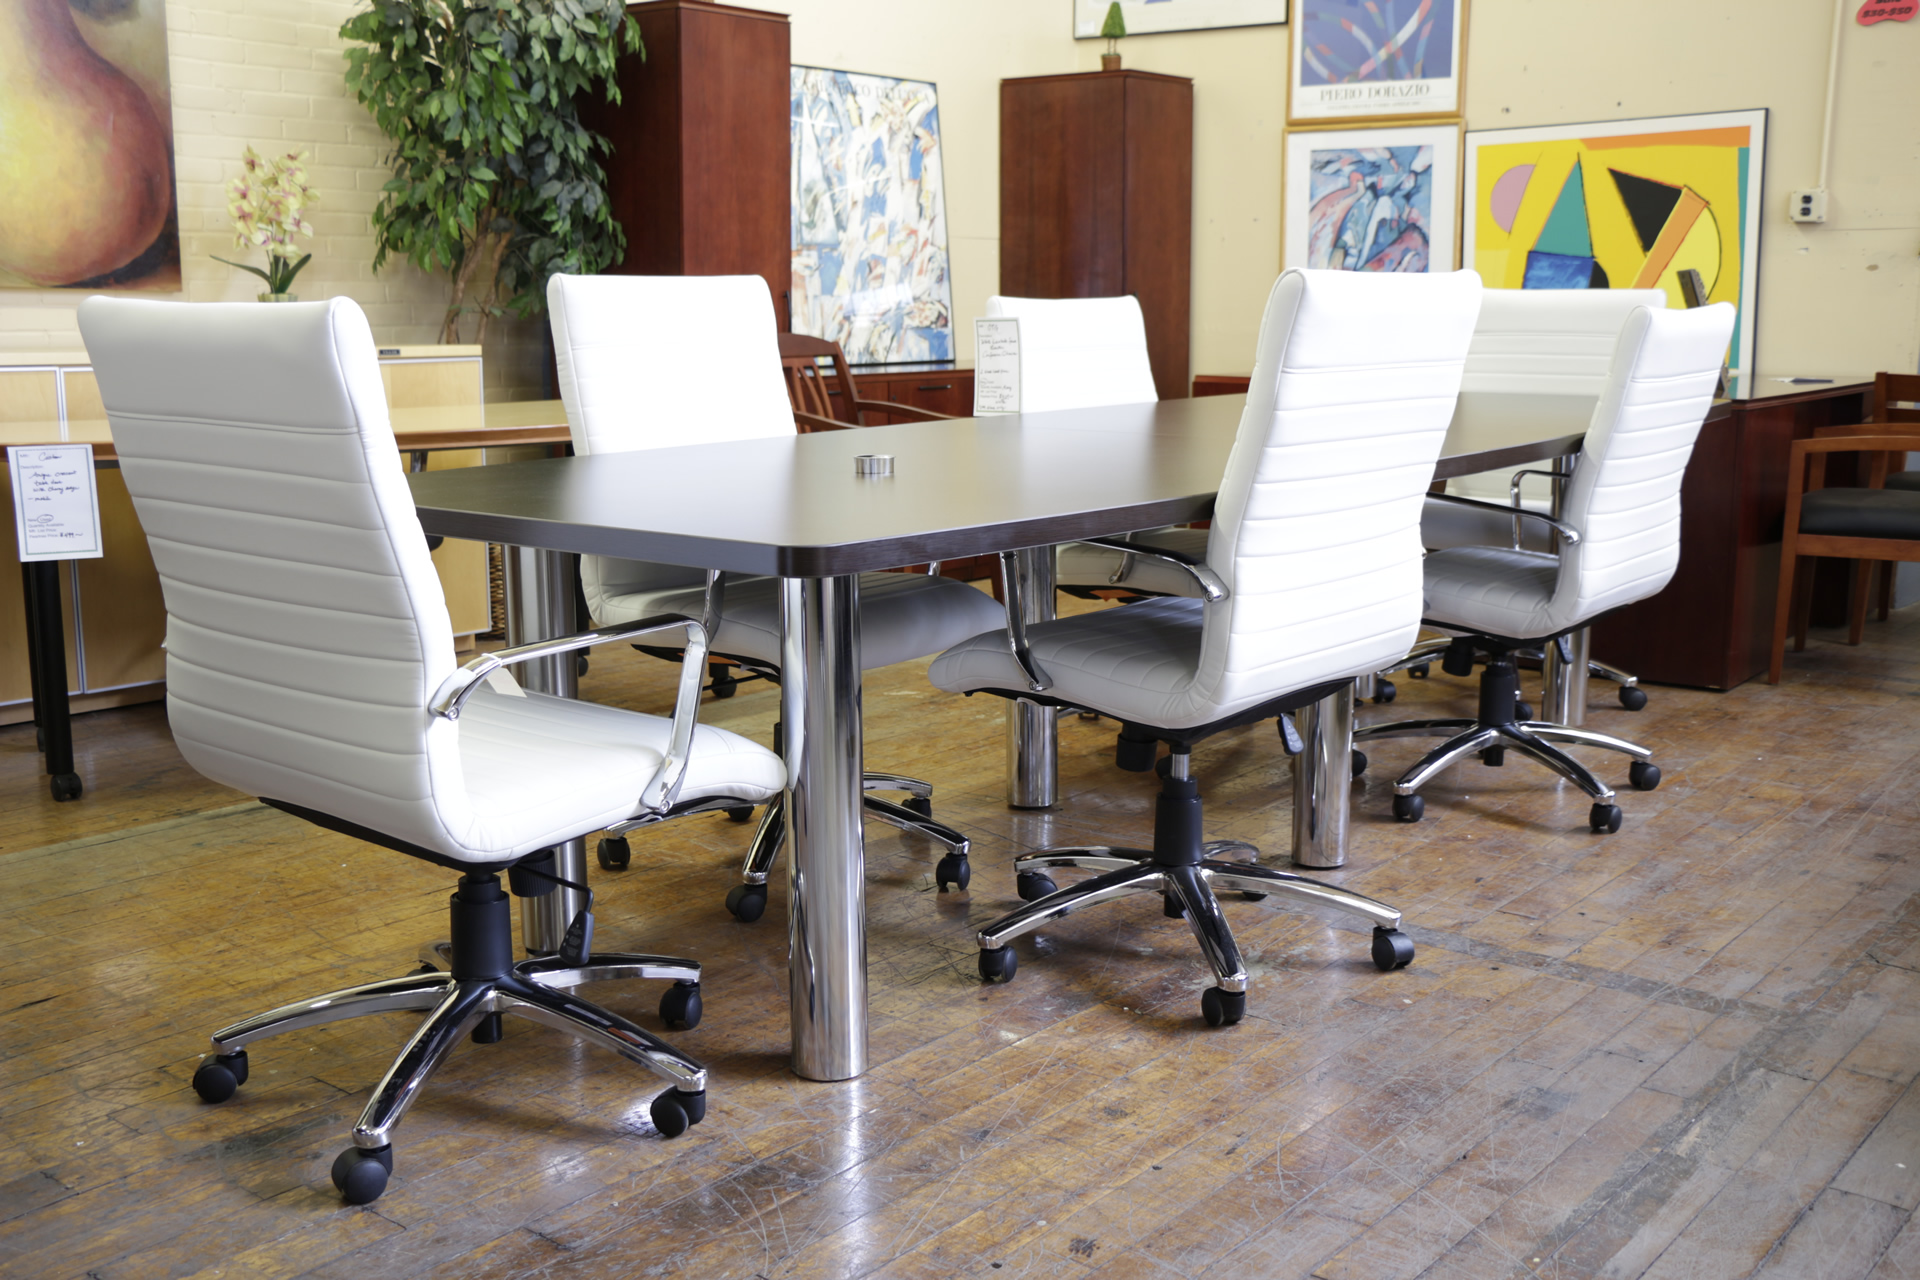 peartreeofficefurniture_peartreeofficefurniture_mg_3213.jpg